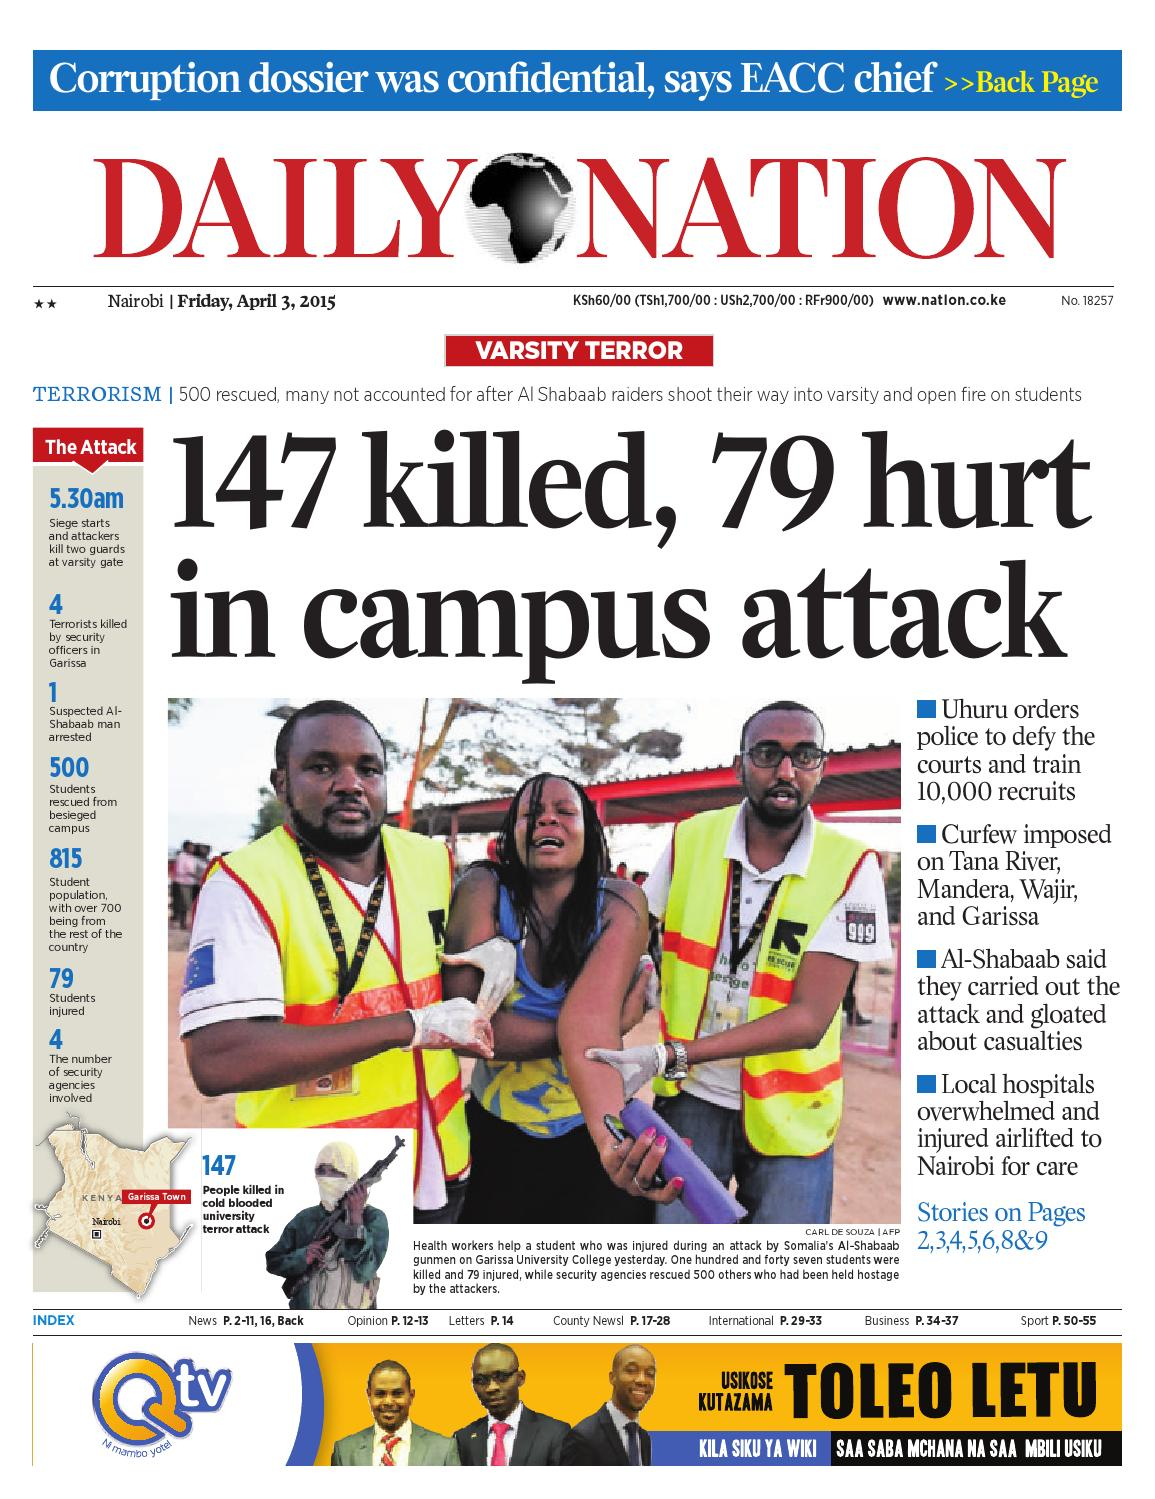 Daily nation apr 3rd 2015 by HABA KWA HABA - issuu Daily Nation